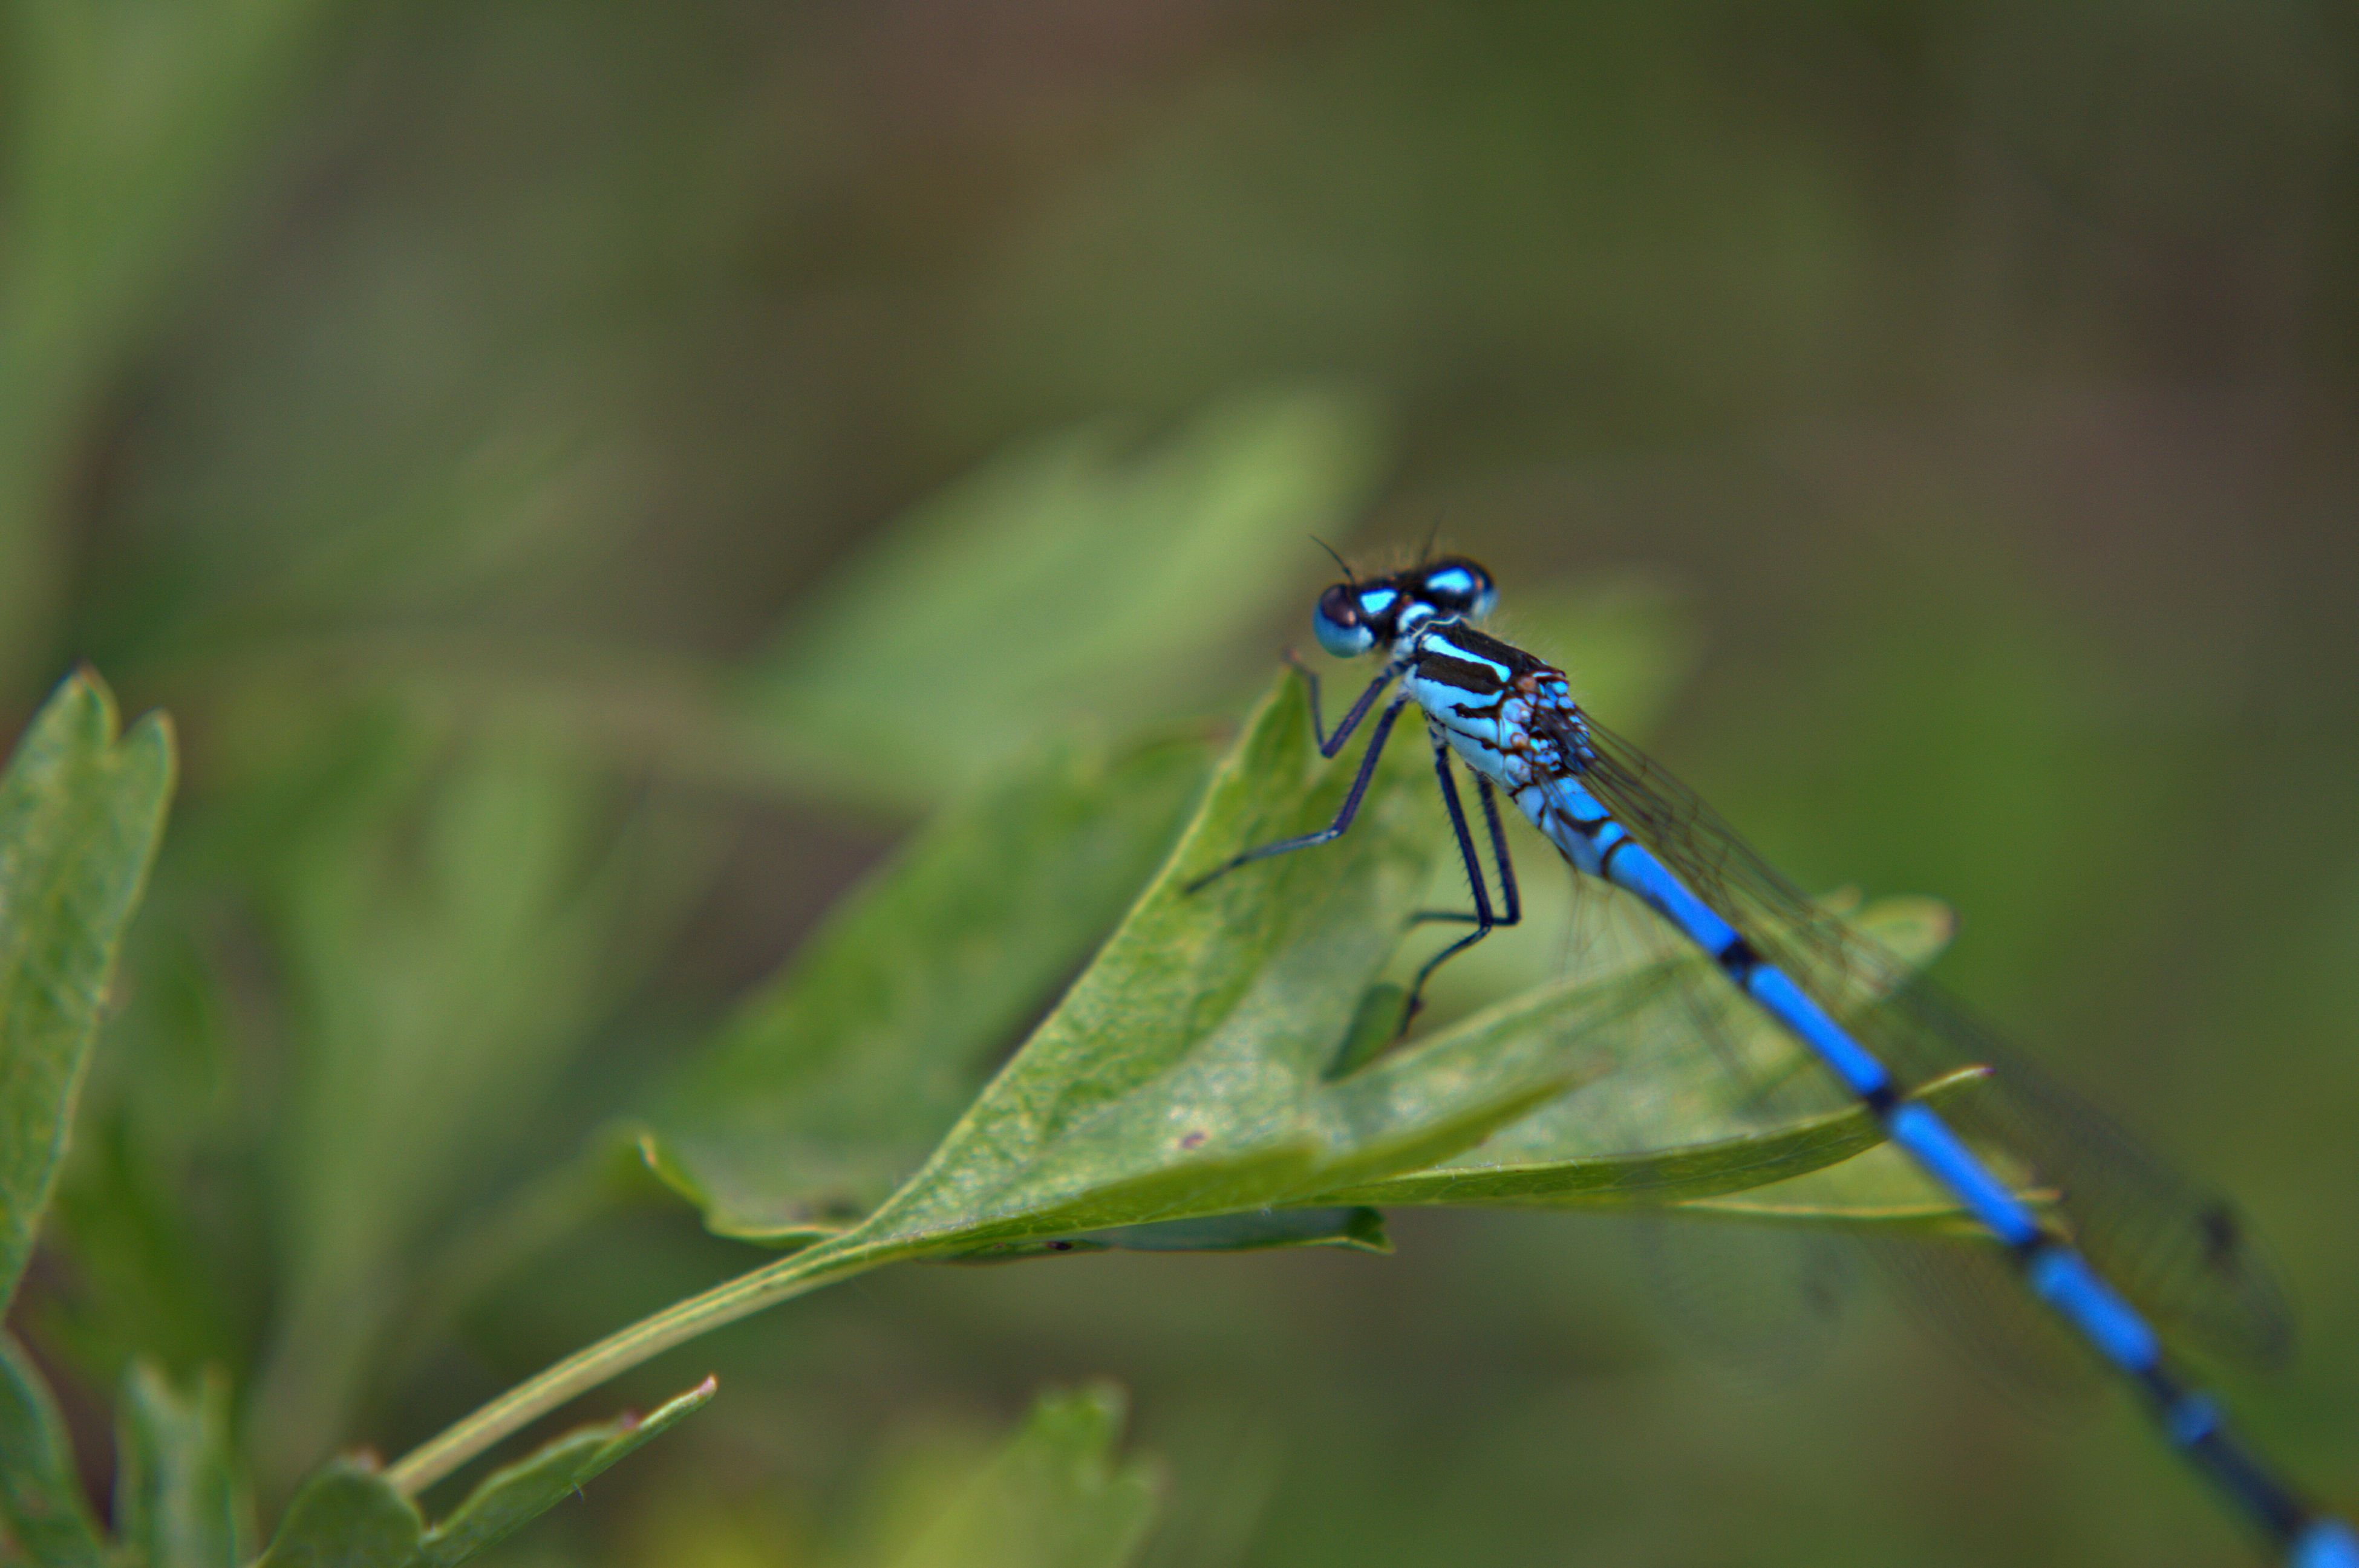 insect, one animal, animal themes, animals in the wild, wildlife, close-up, focus on foreground, selective focus, green color, dragonfly, leaf, plant, nature, day, outdoors, no people, full length, beauty in nature, animal wing, growth